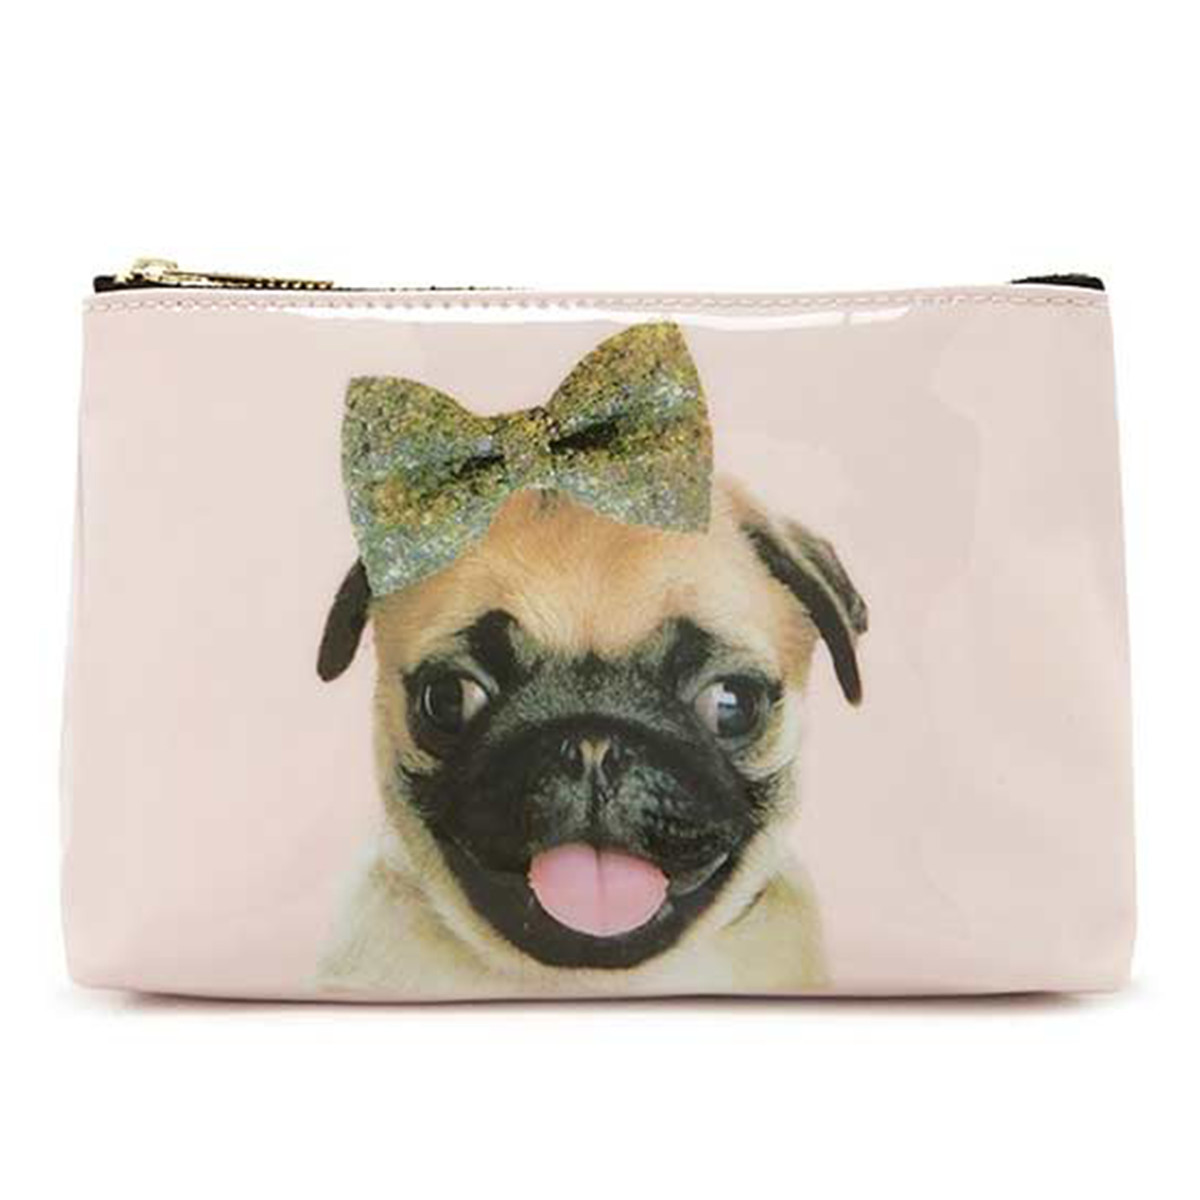 Forever 21 makeup bag with pug on it photo